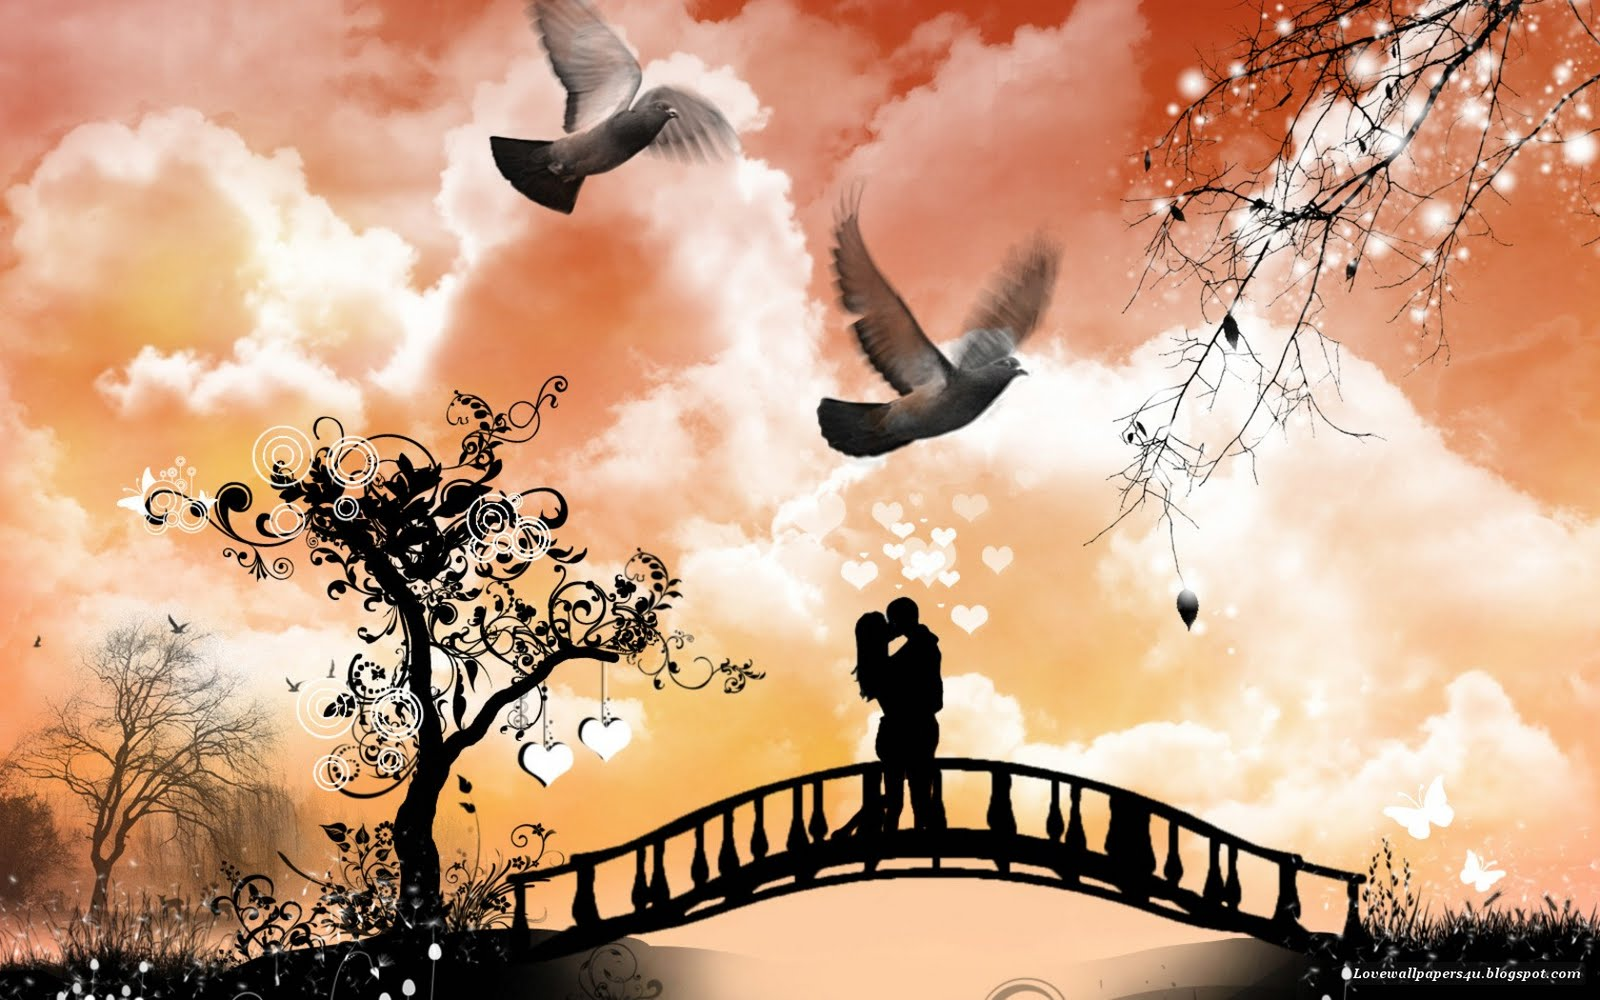 Love wallpaper hdLove wallpaperromantic wallpapers hdromantic 1600x1000